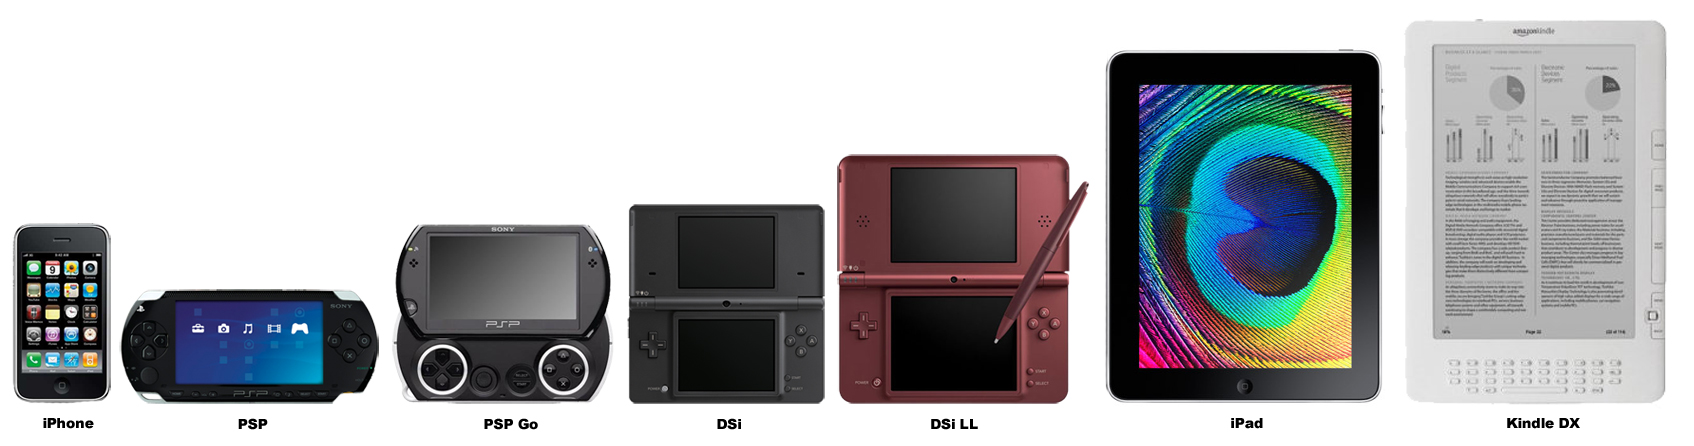 how to use job on ff3 ds